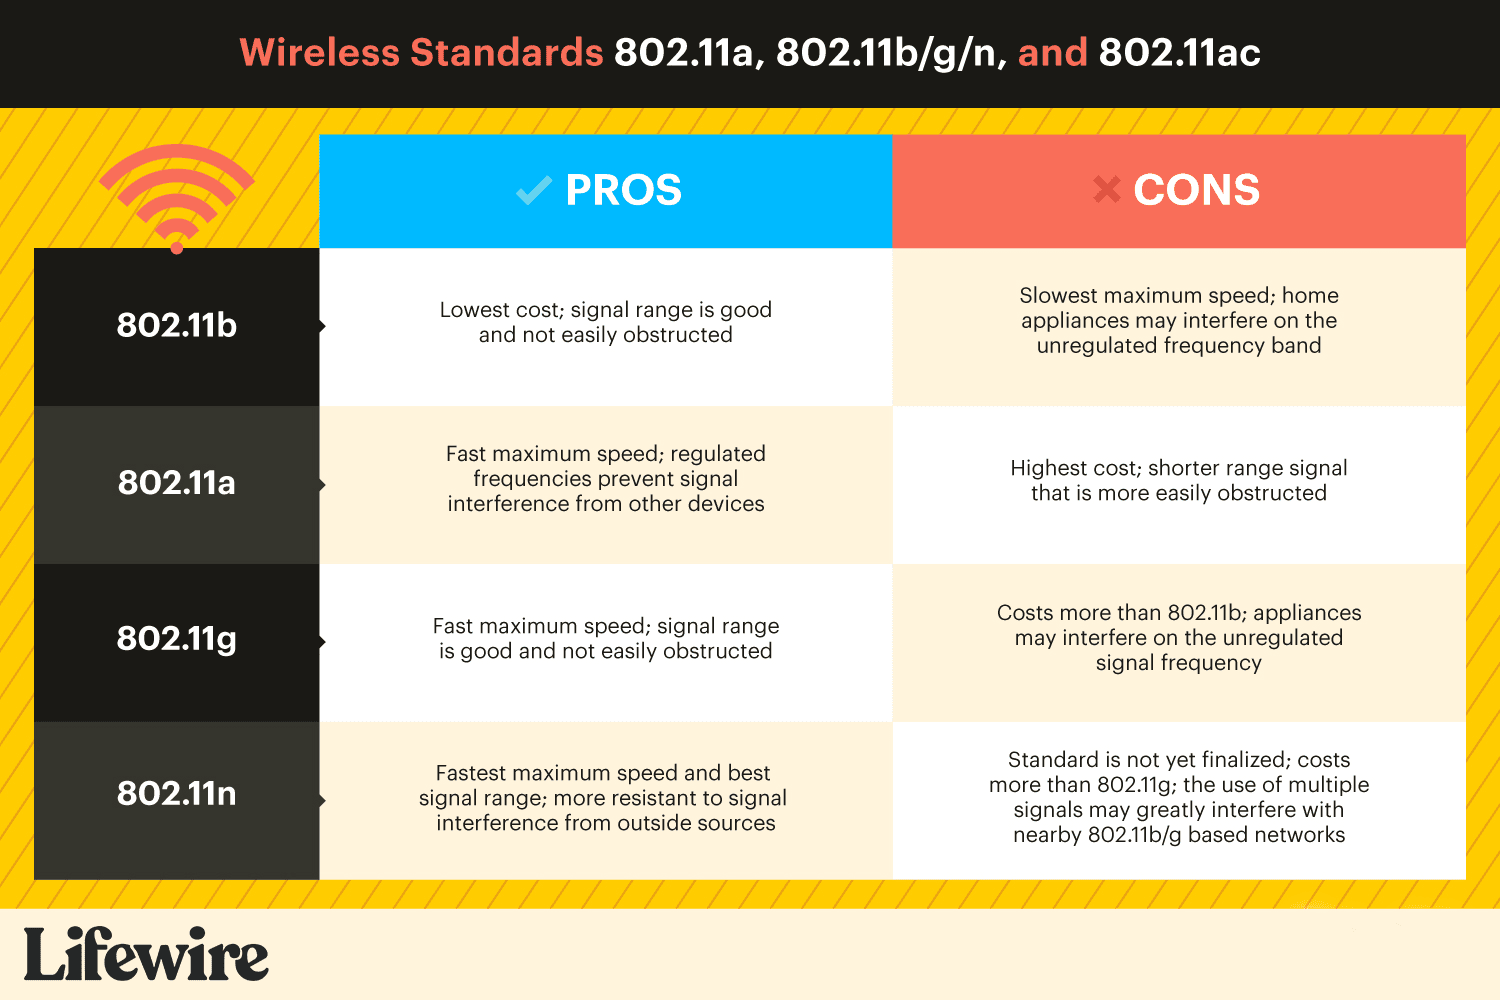 A comparison chart of the Pros and Cons of the wireless standards 802.11ac, 802.11n, and 802.11g.